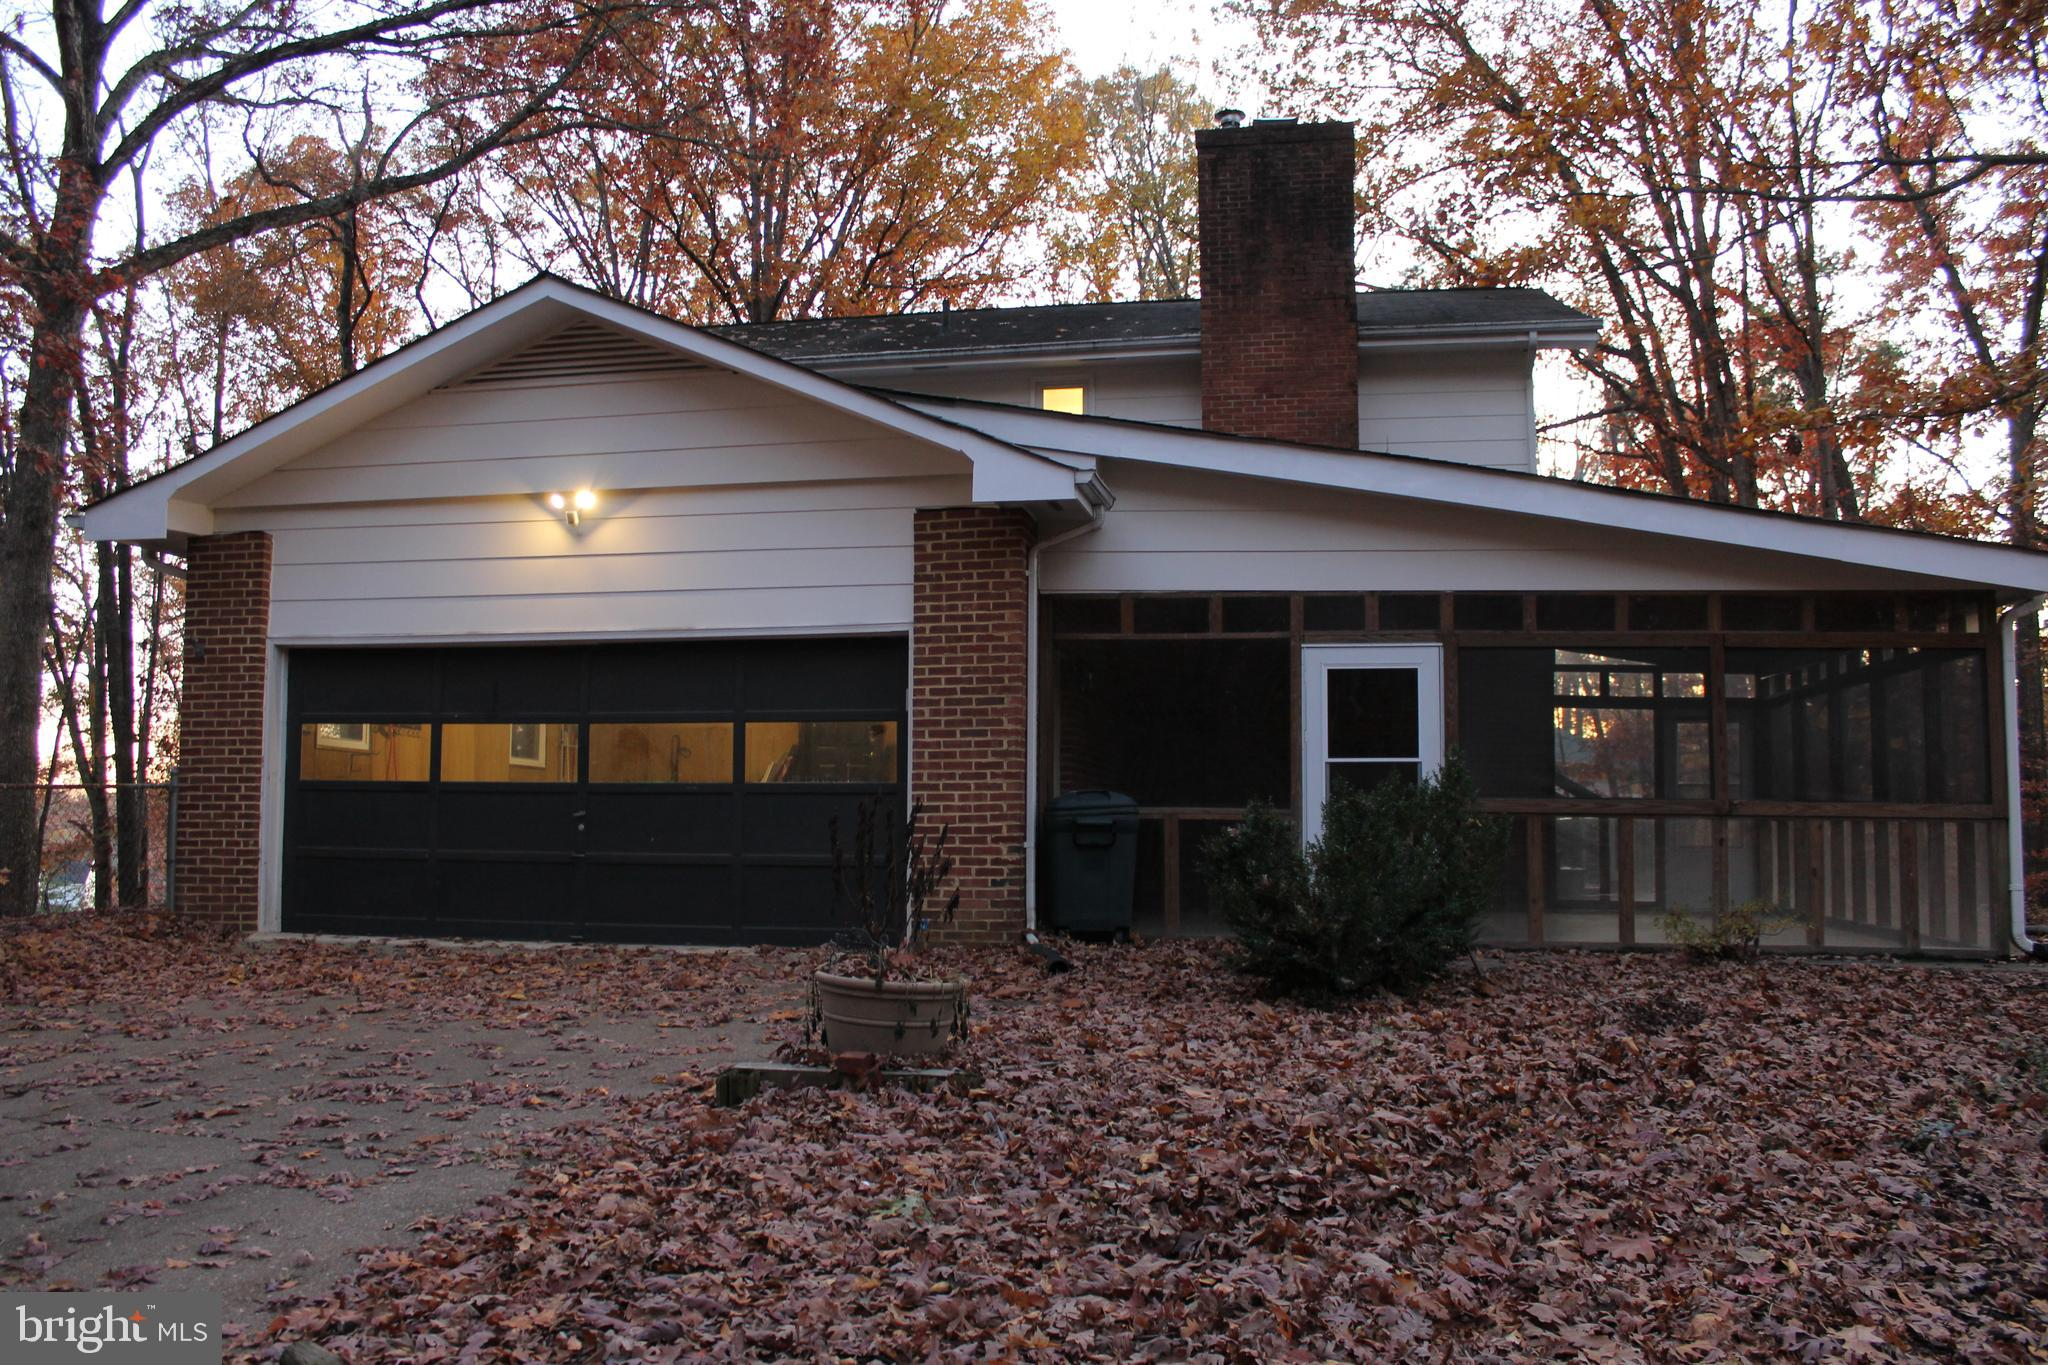 Move-In Ready Home on Private 1.27 Acre lot just minutes from historic downtown Fredericksburg, shop